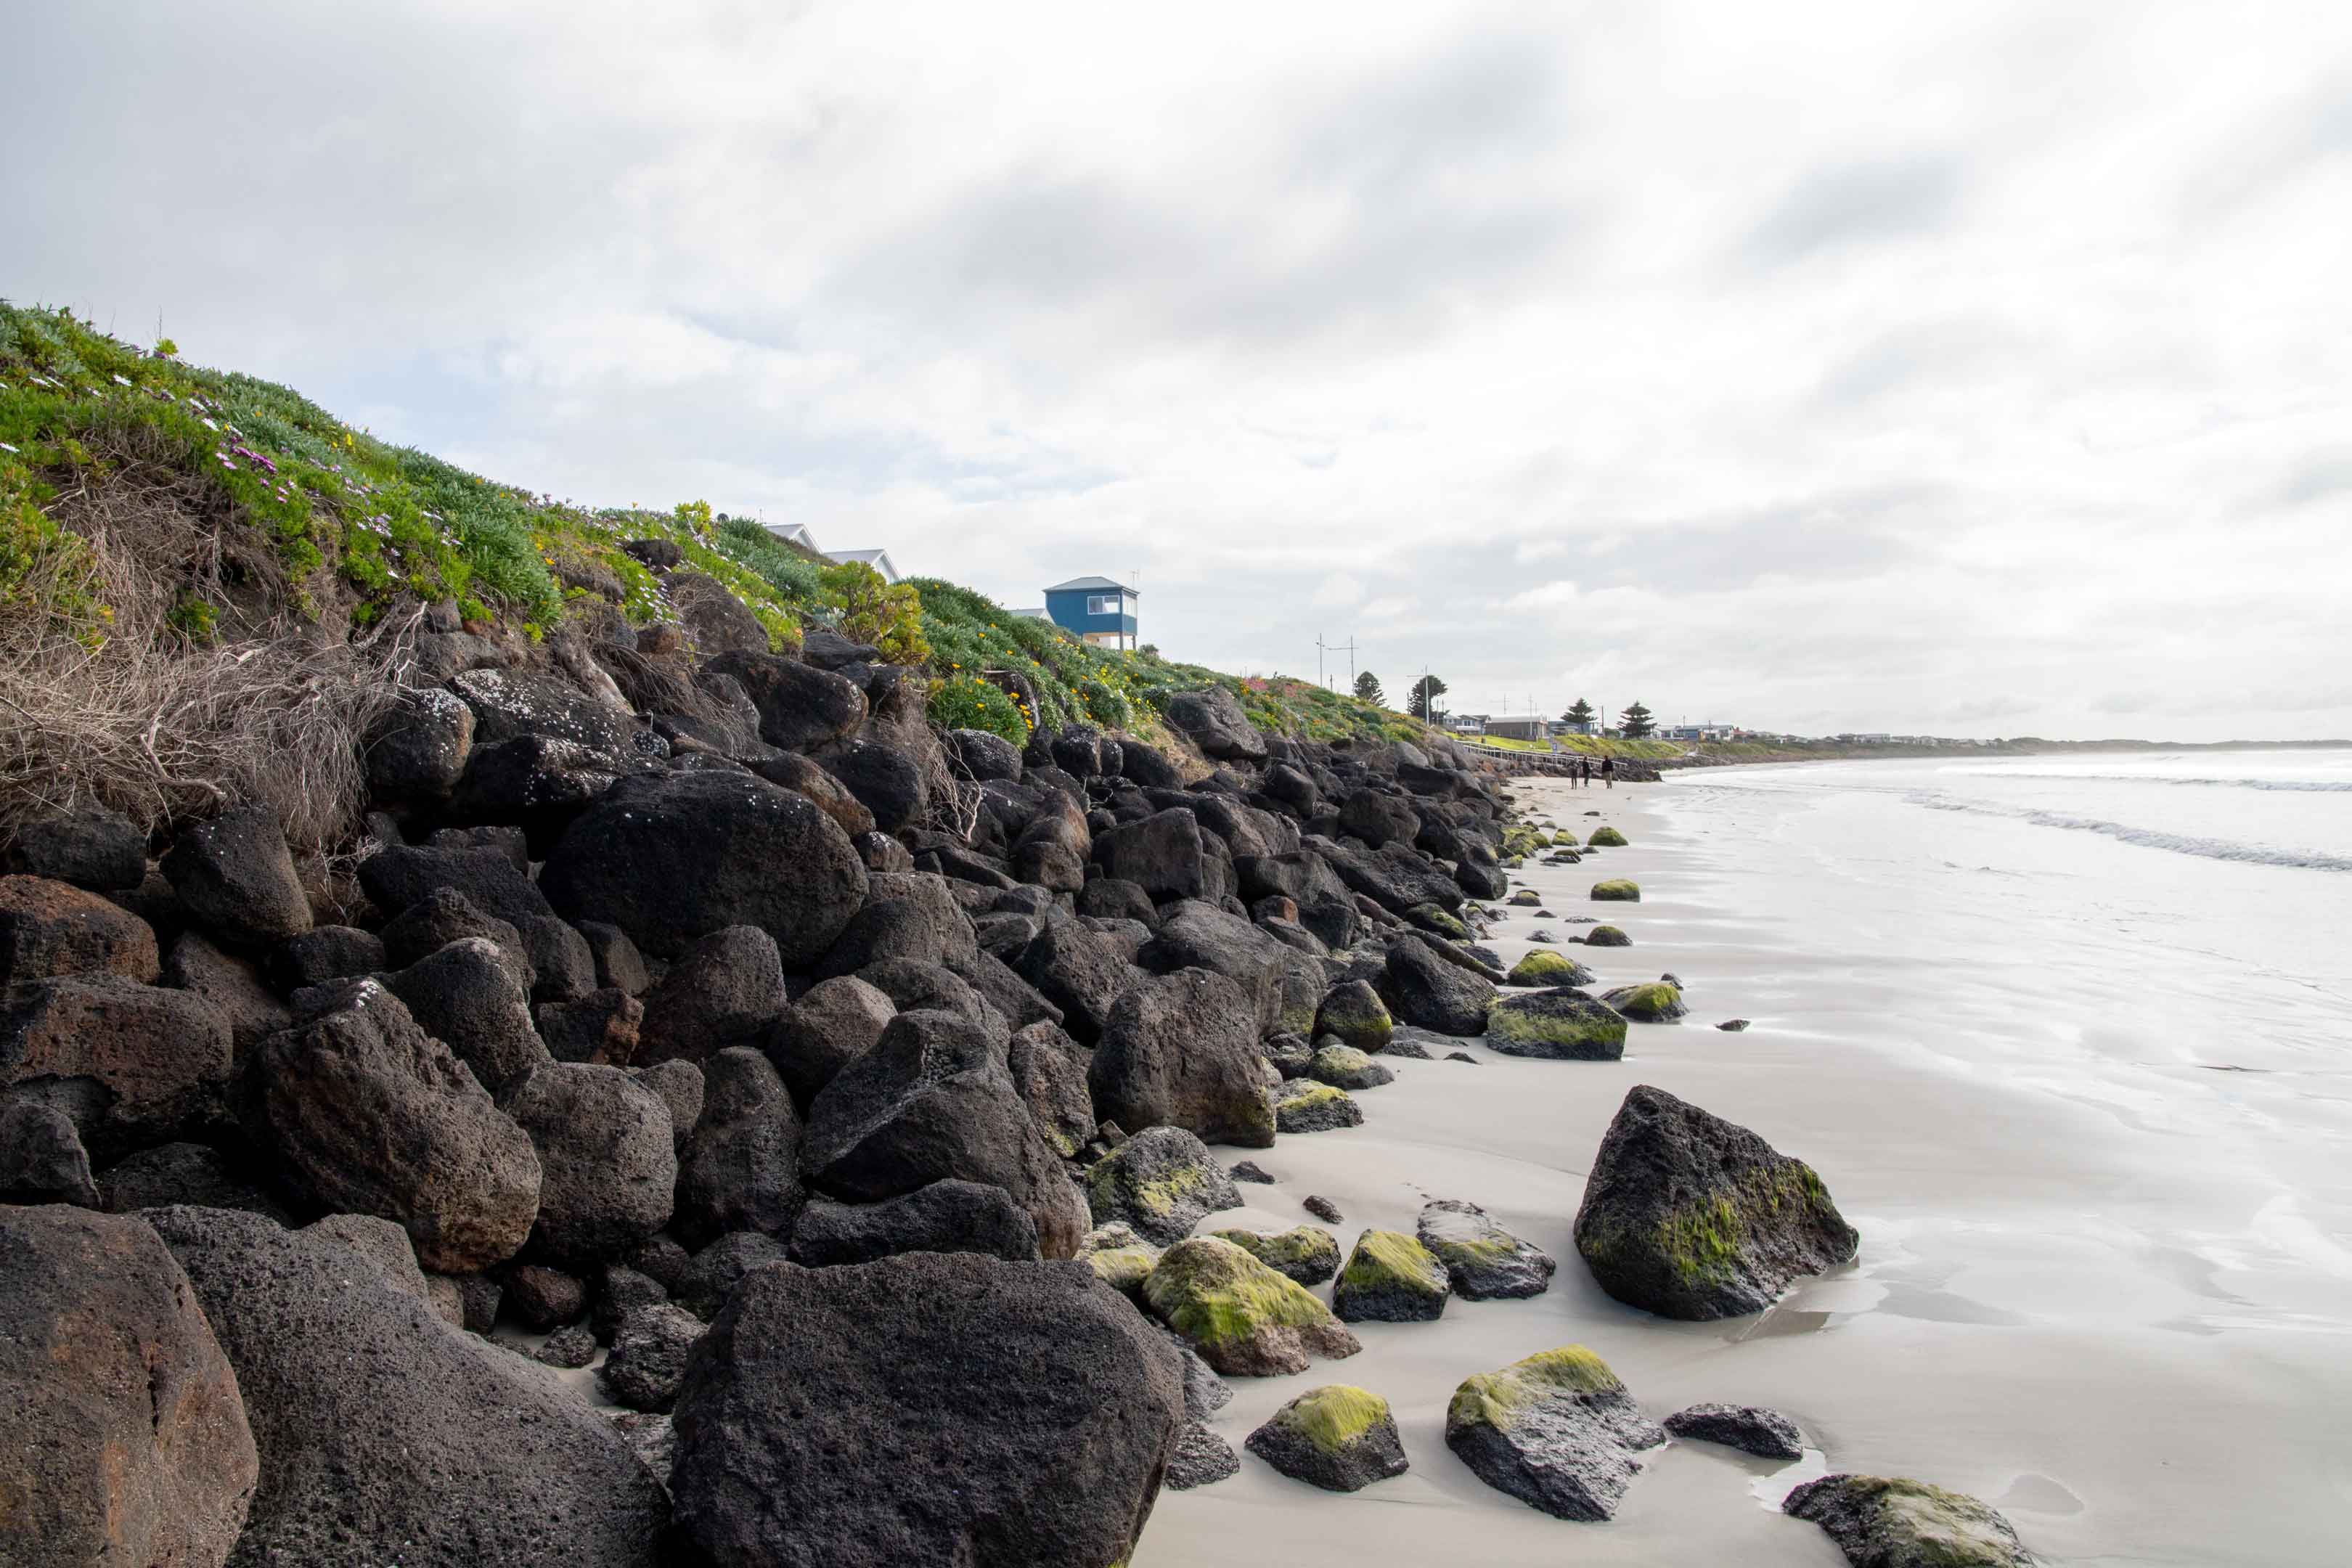 Algae-covered rocks show the mark of the high tide. Higher storm tides and king tides threaten stability. Photo: Steven Zoricic